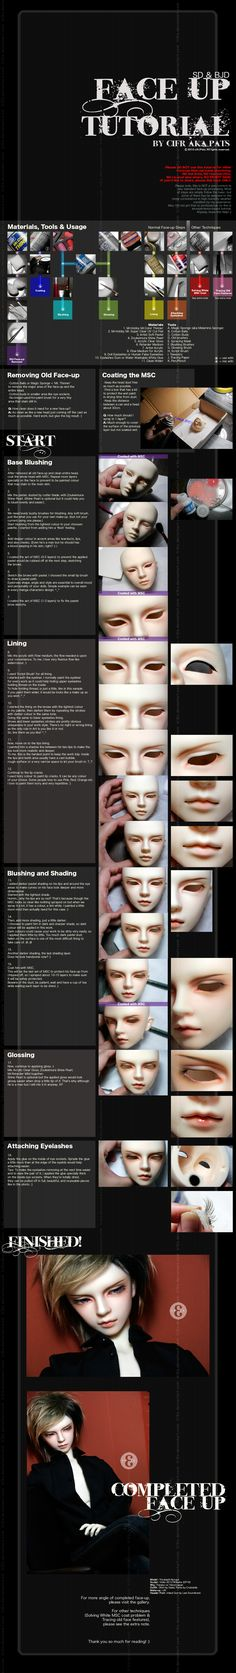 A faceup tutorial w/ suggested brushes.